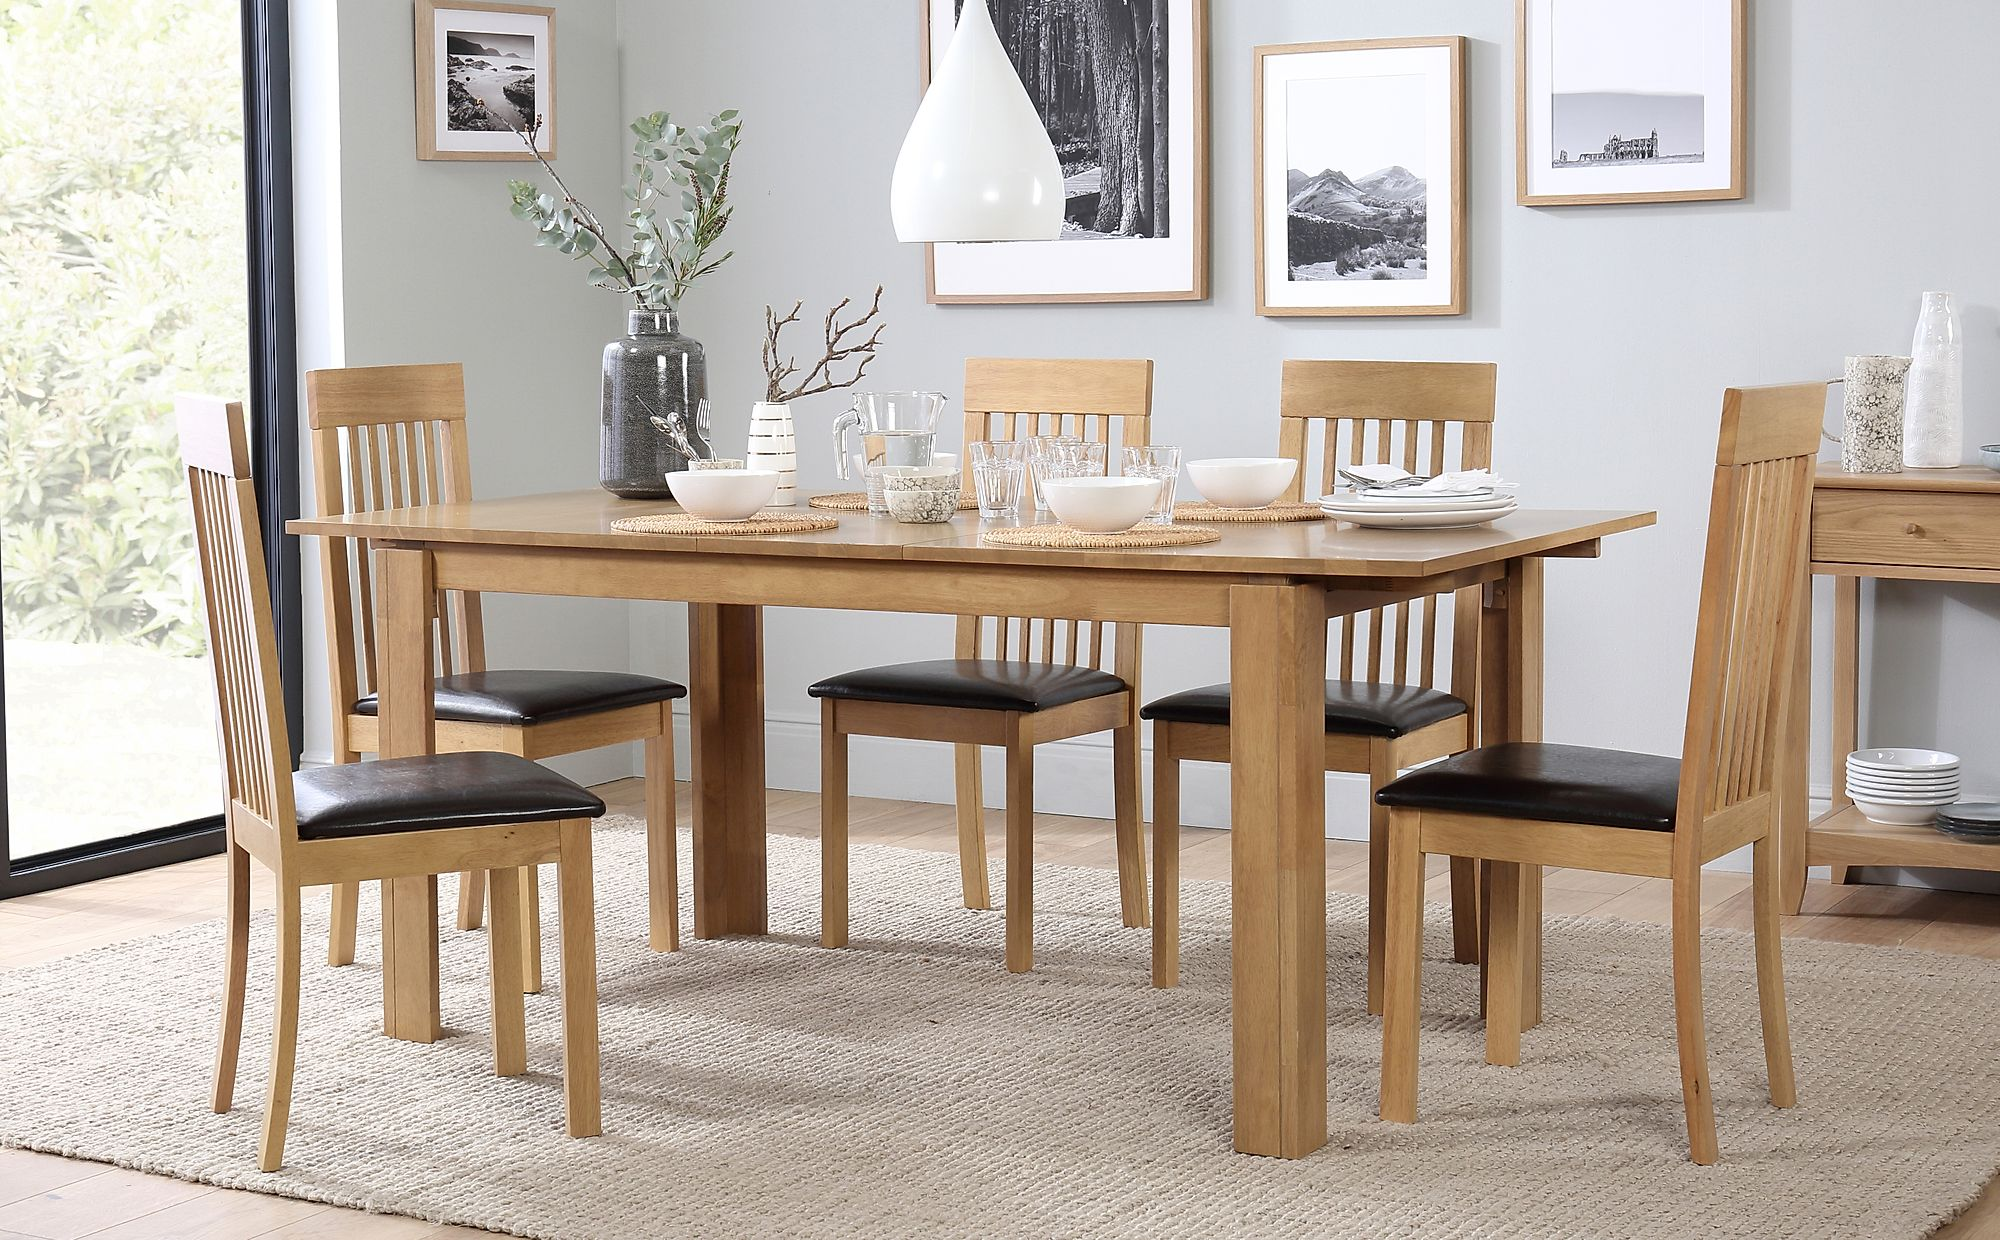 Bali Extending Dining Table and 6 Oxford Chairs Set Only 39999